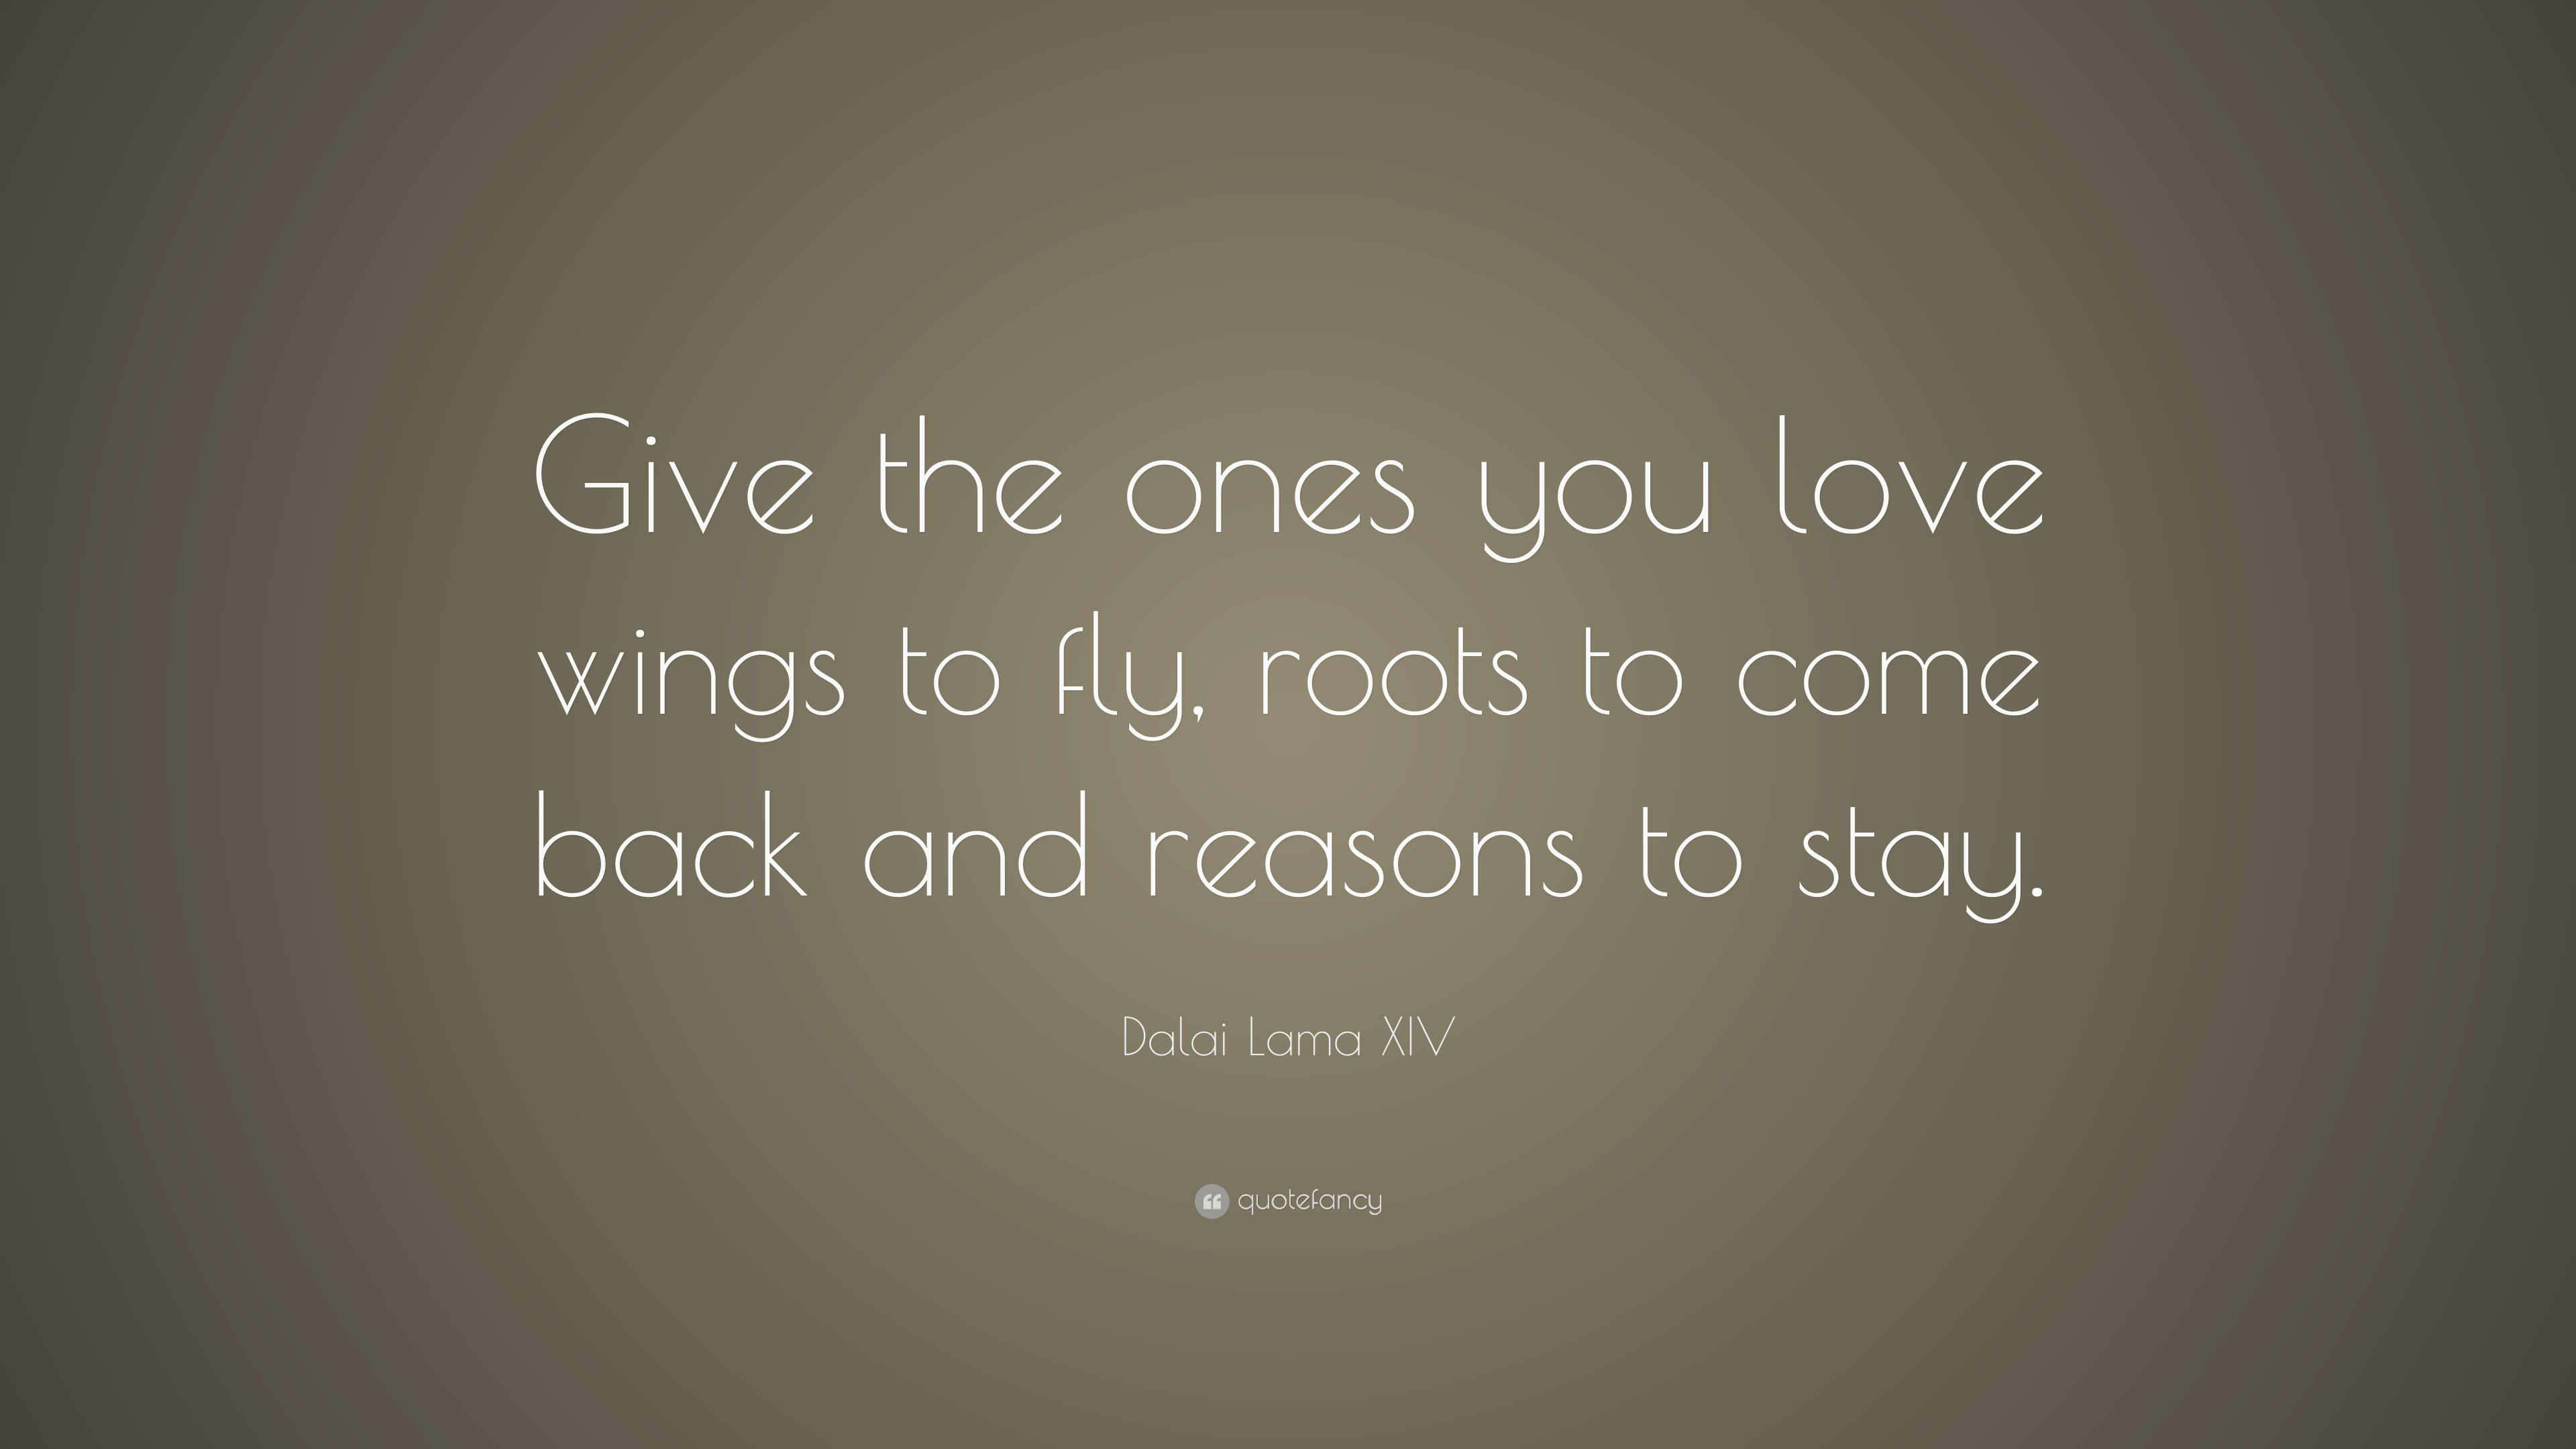 Dalai Lama Quotes Wallpapers Dalai Lama Xiv Quote Give The Ones You Love Wings To Fly